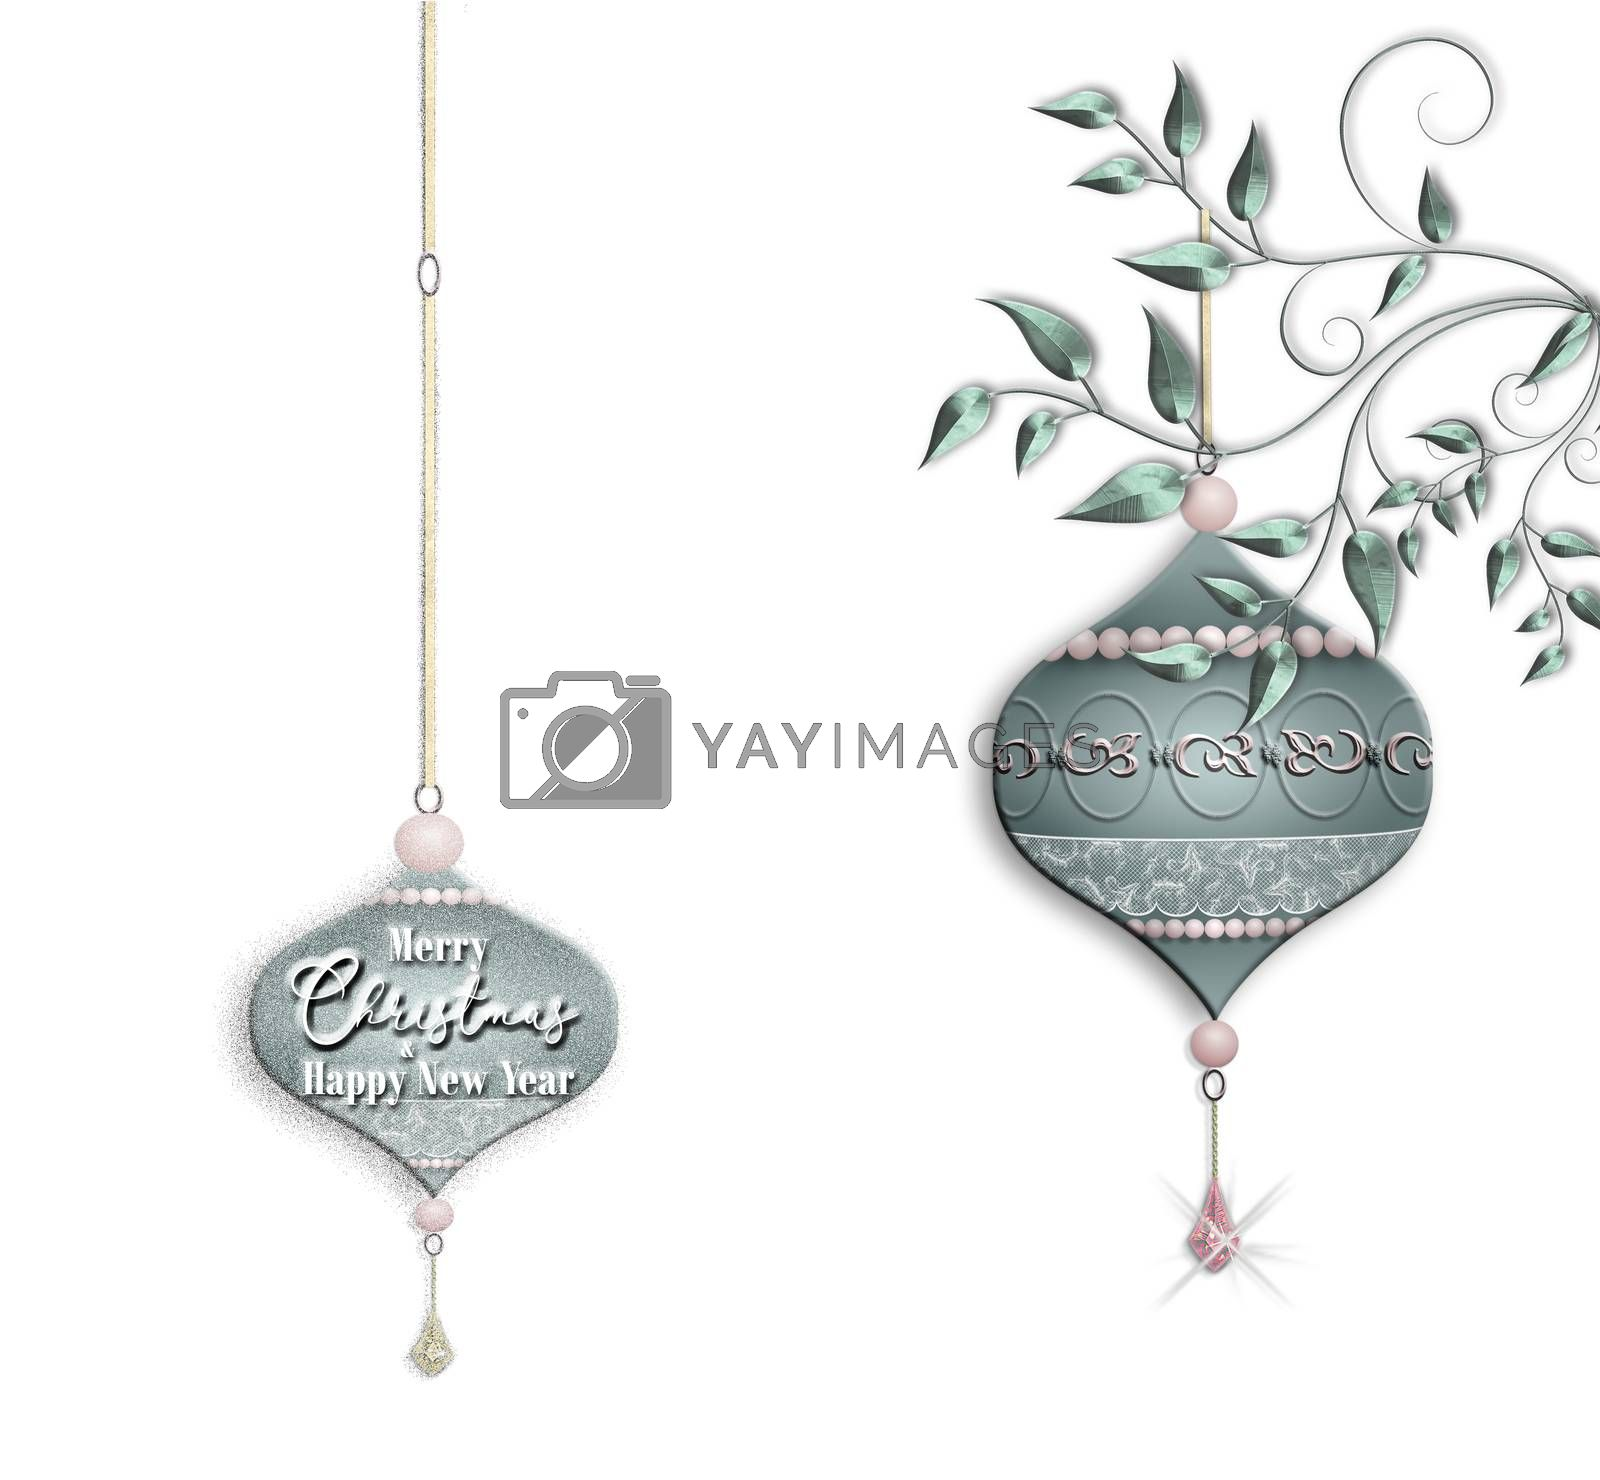 Luxury green pink Christmas baubles with jewelry decoration hanging against white background. Text Merry Christmas Happy New Year. Copy space. Place for text, mock up. 3D illustration